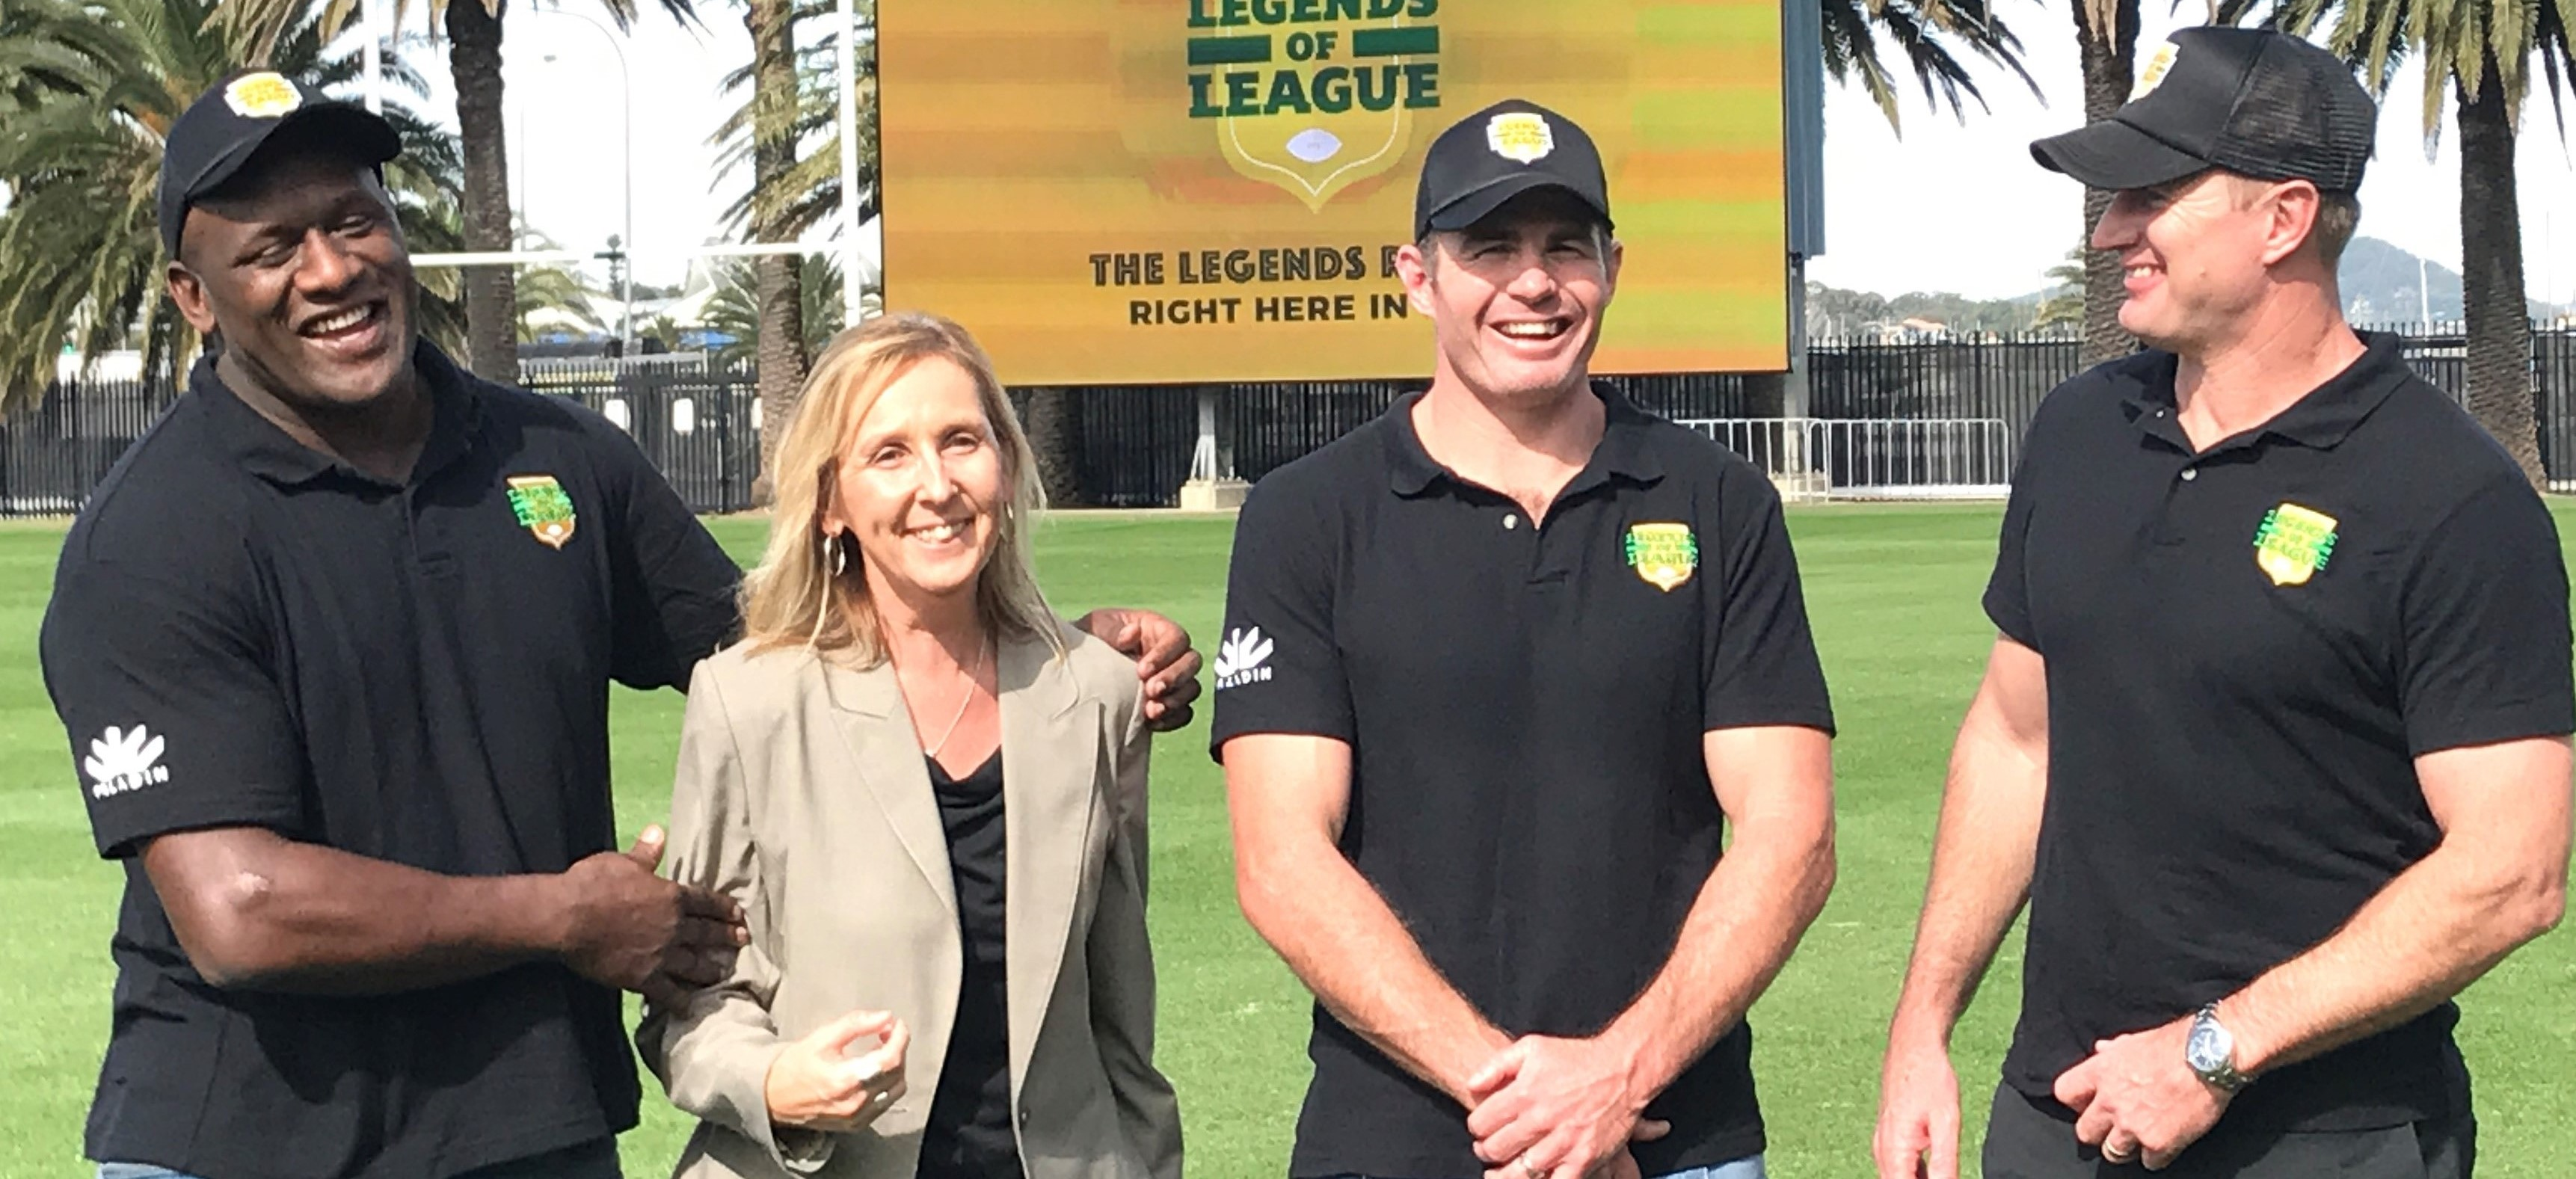 Legends_of_League_launch_2018_cropped